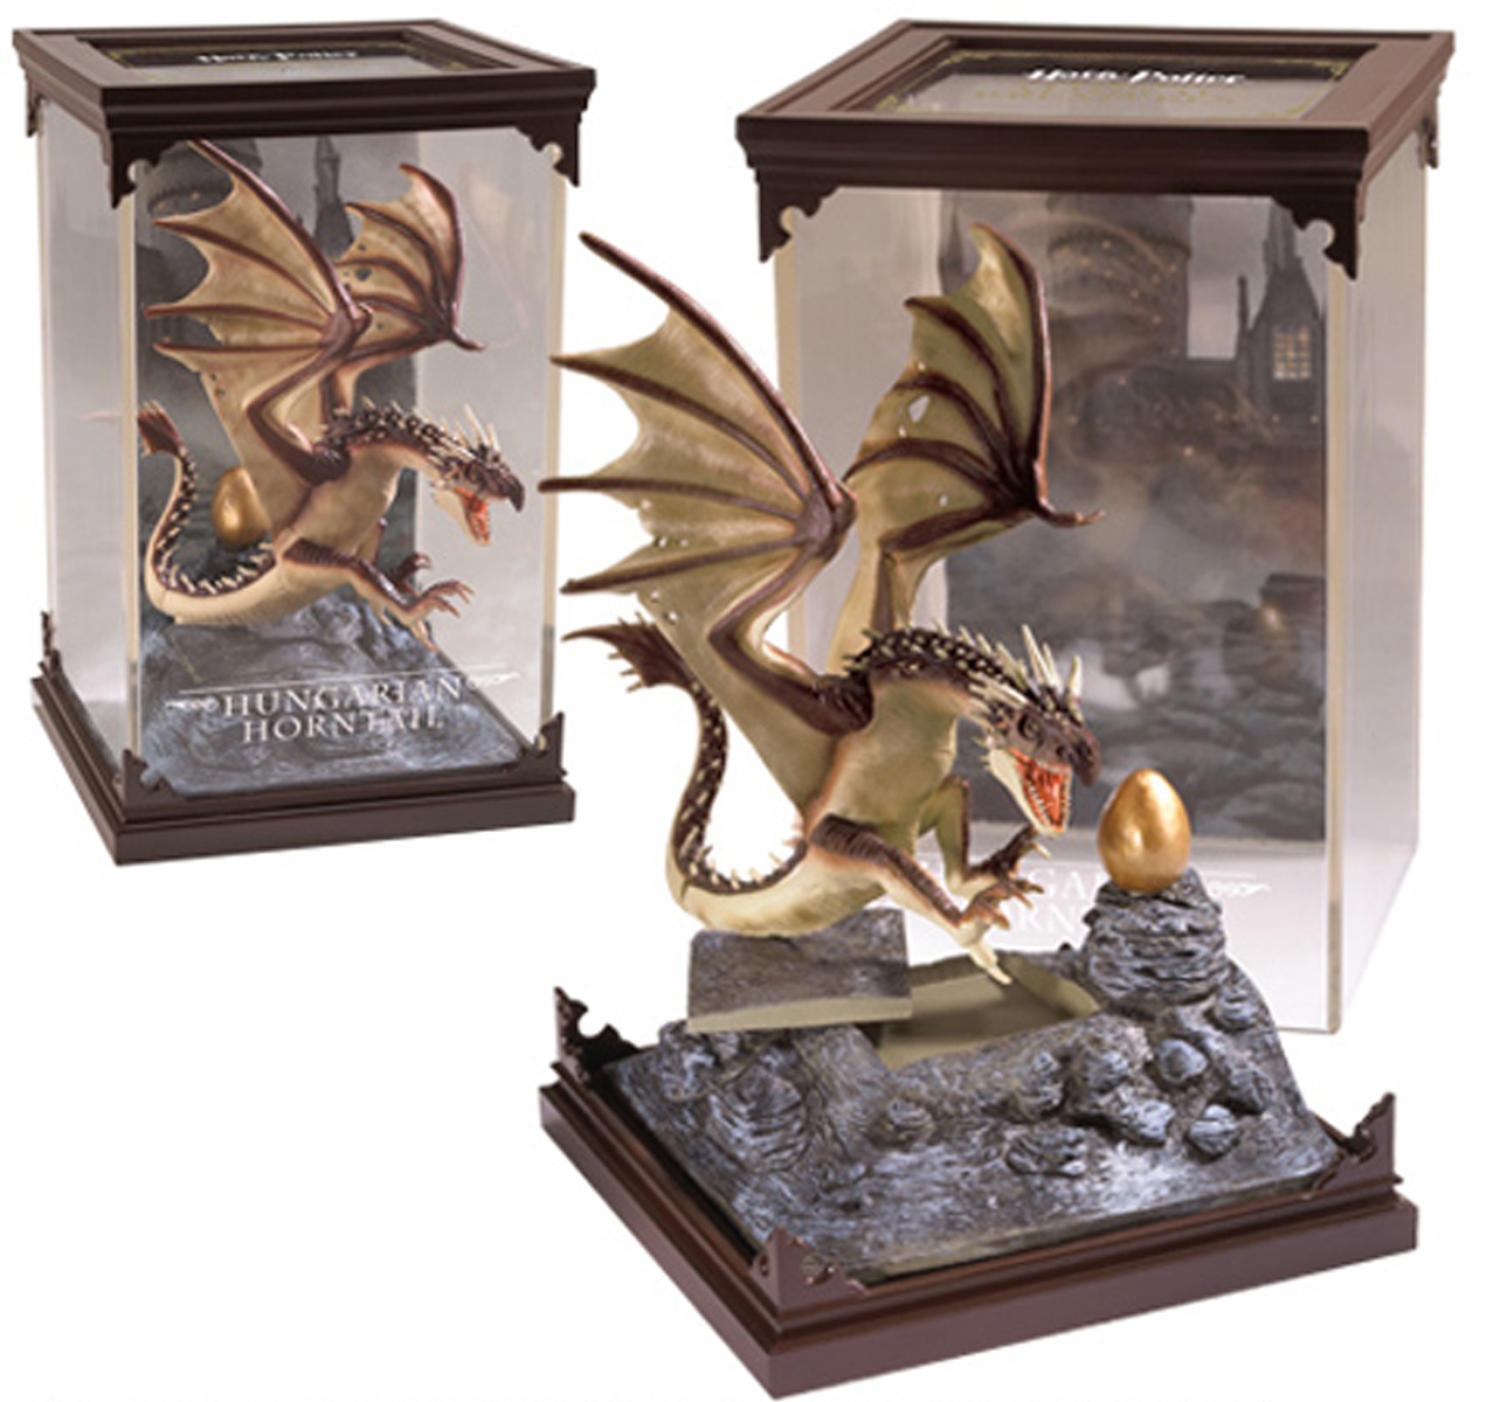 Harry Potter - Hungarian Horntail Sculpture